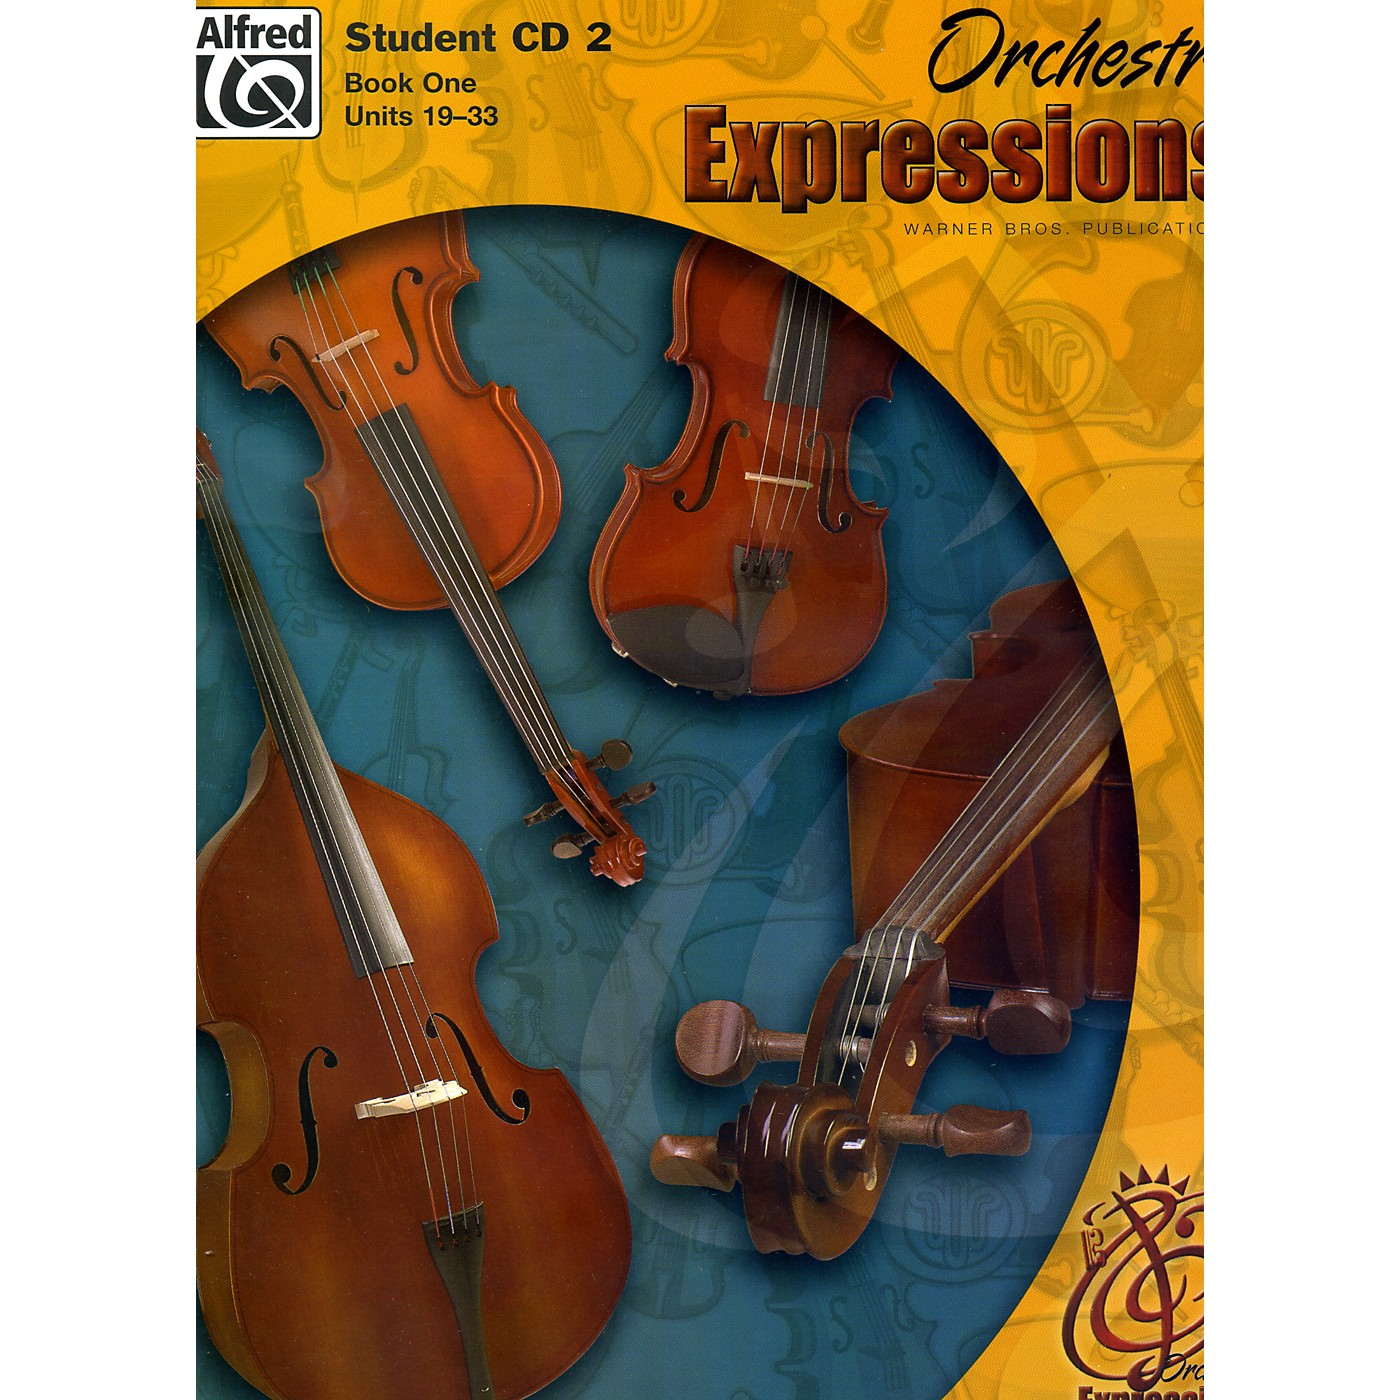 Alfred Orchestra Expressions Book One Student Edition Student CD 2 thumbnail